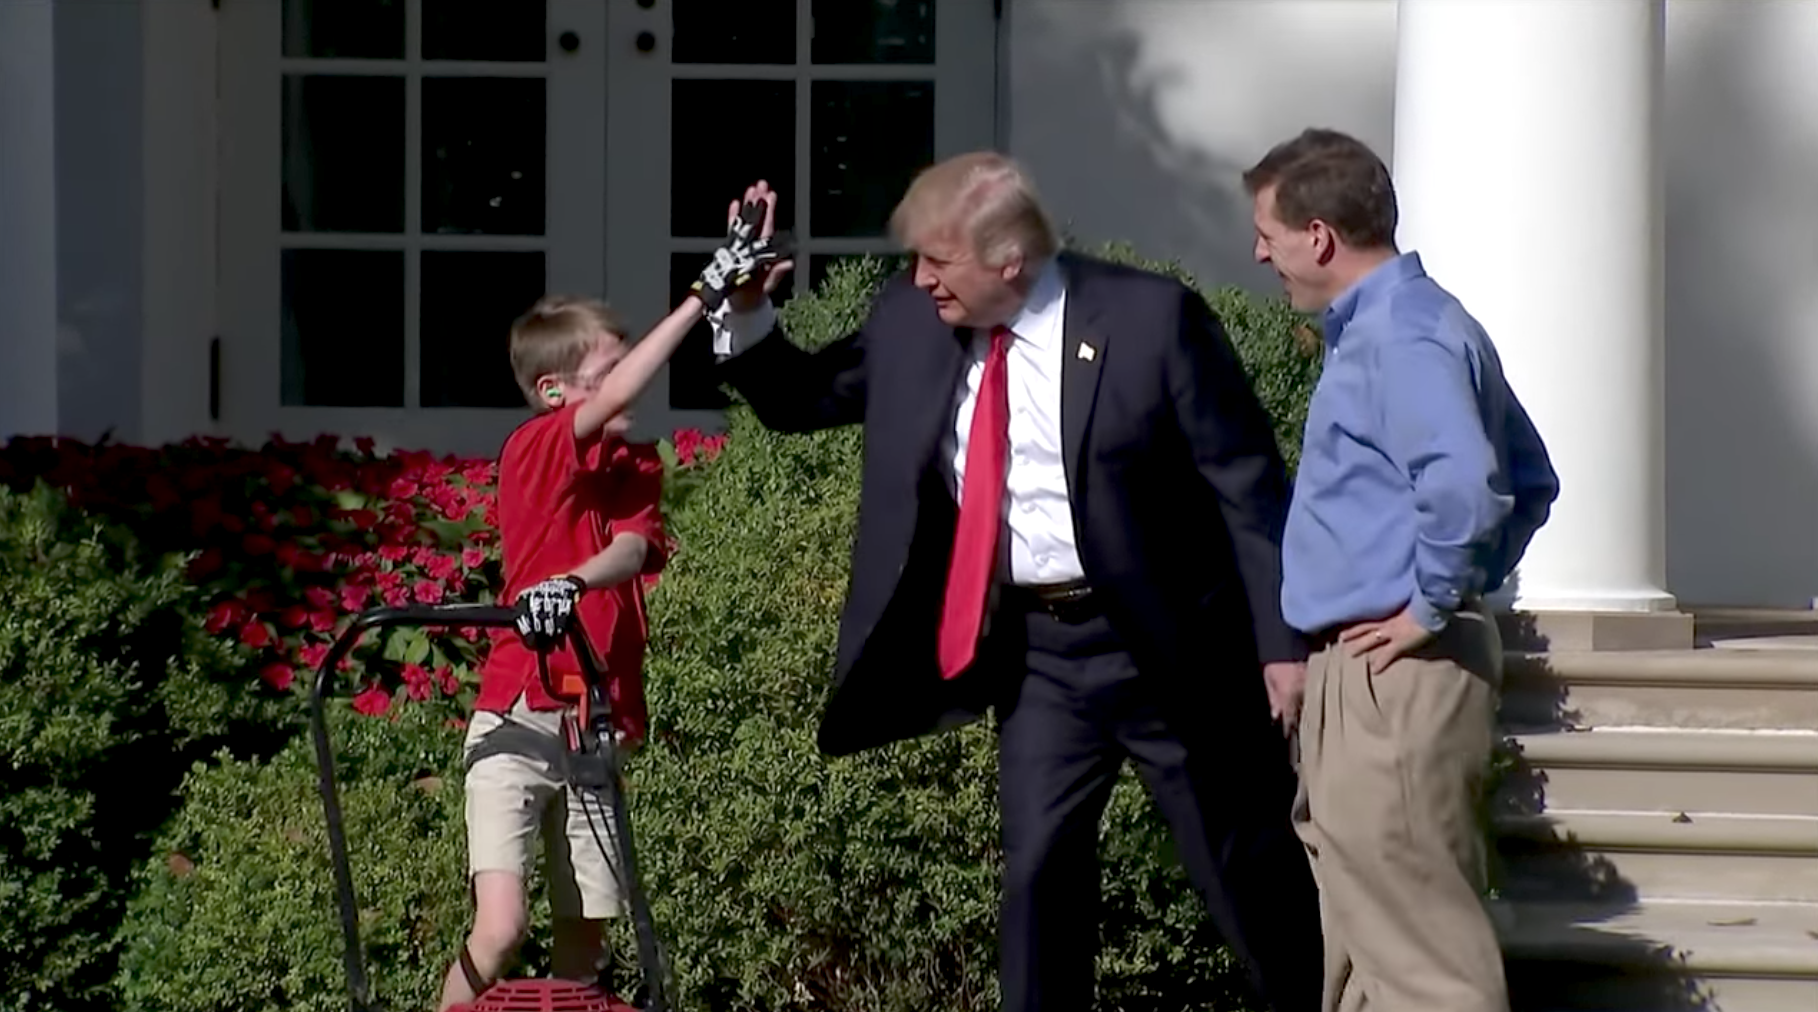 Donald Trump with Frank Giaccio after mowing the white house lawn